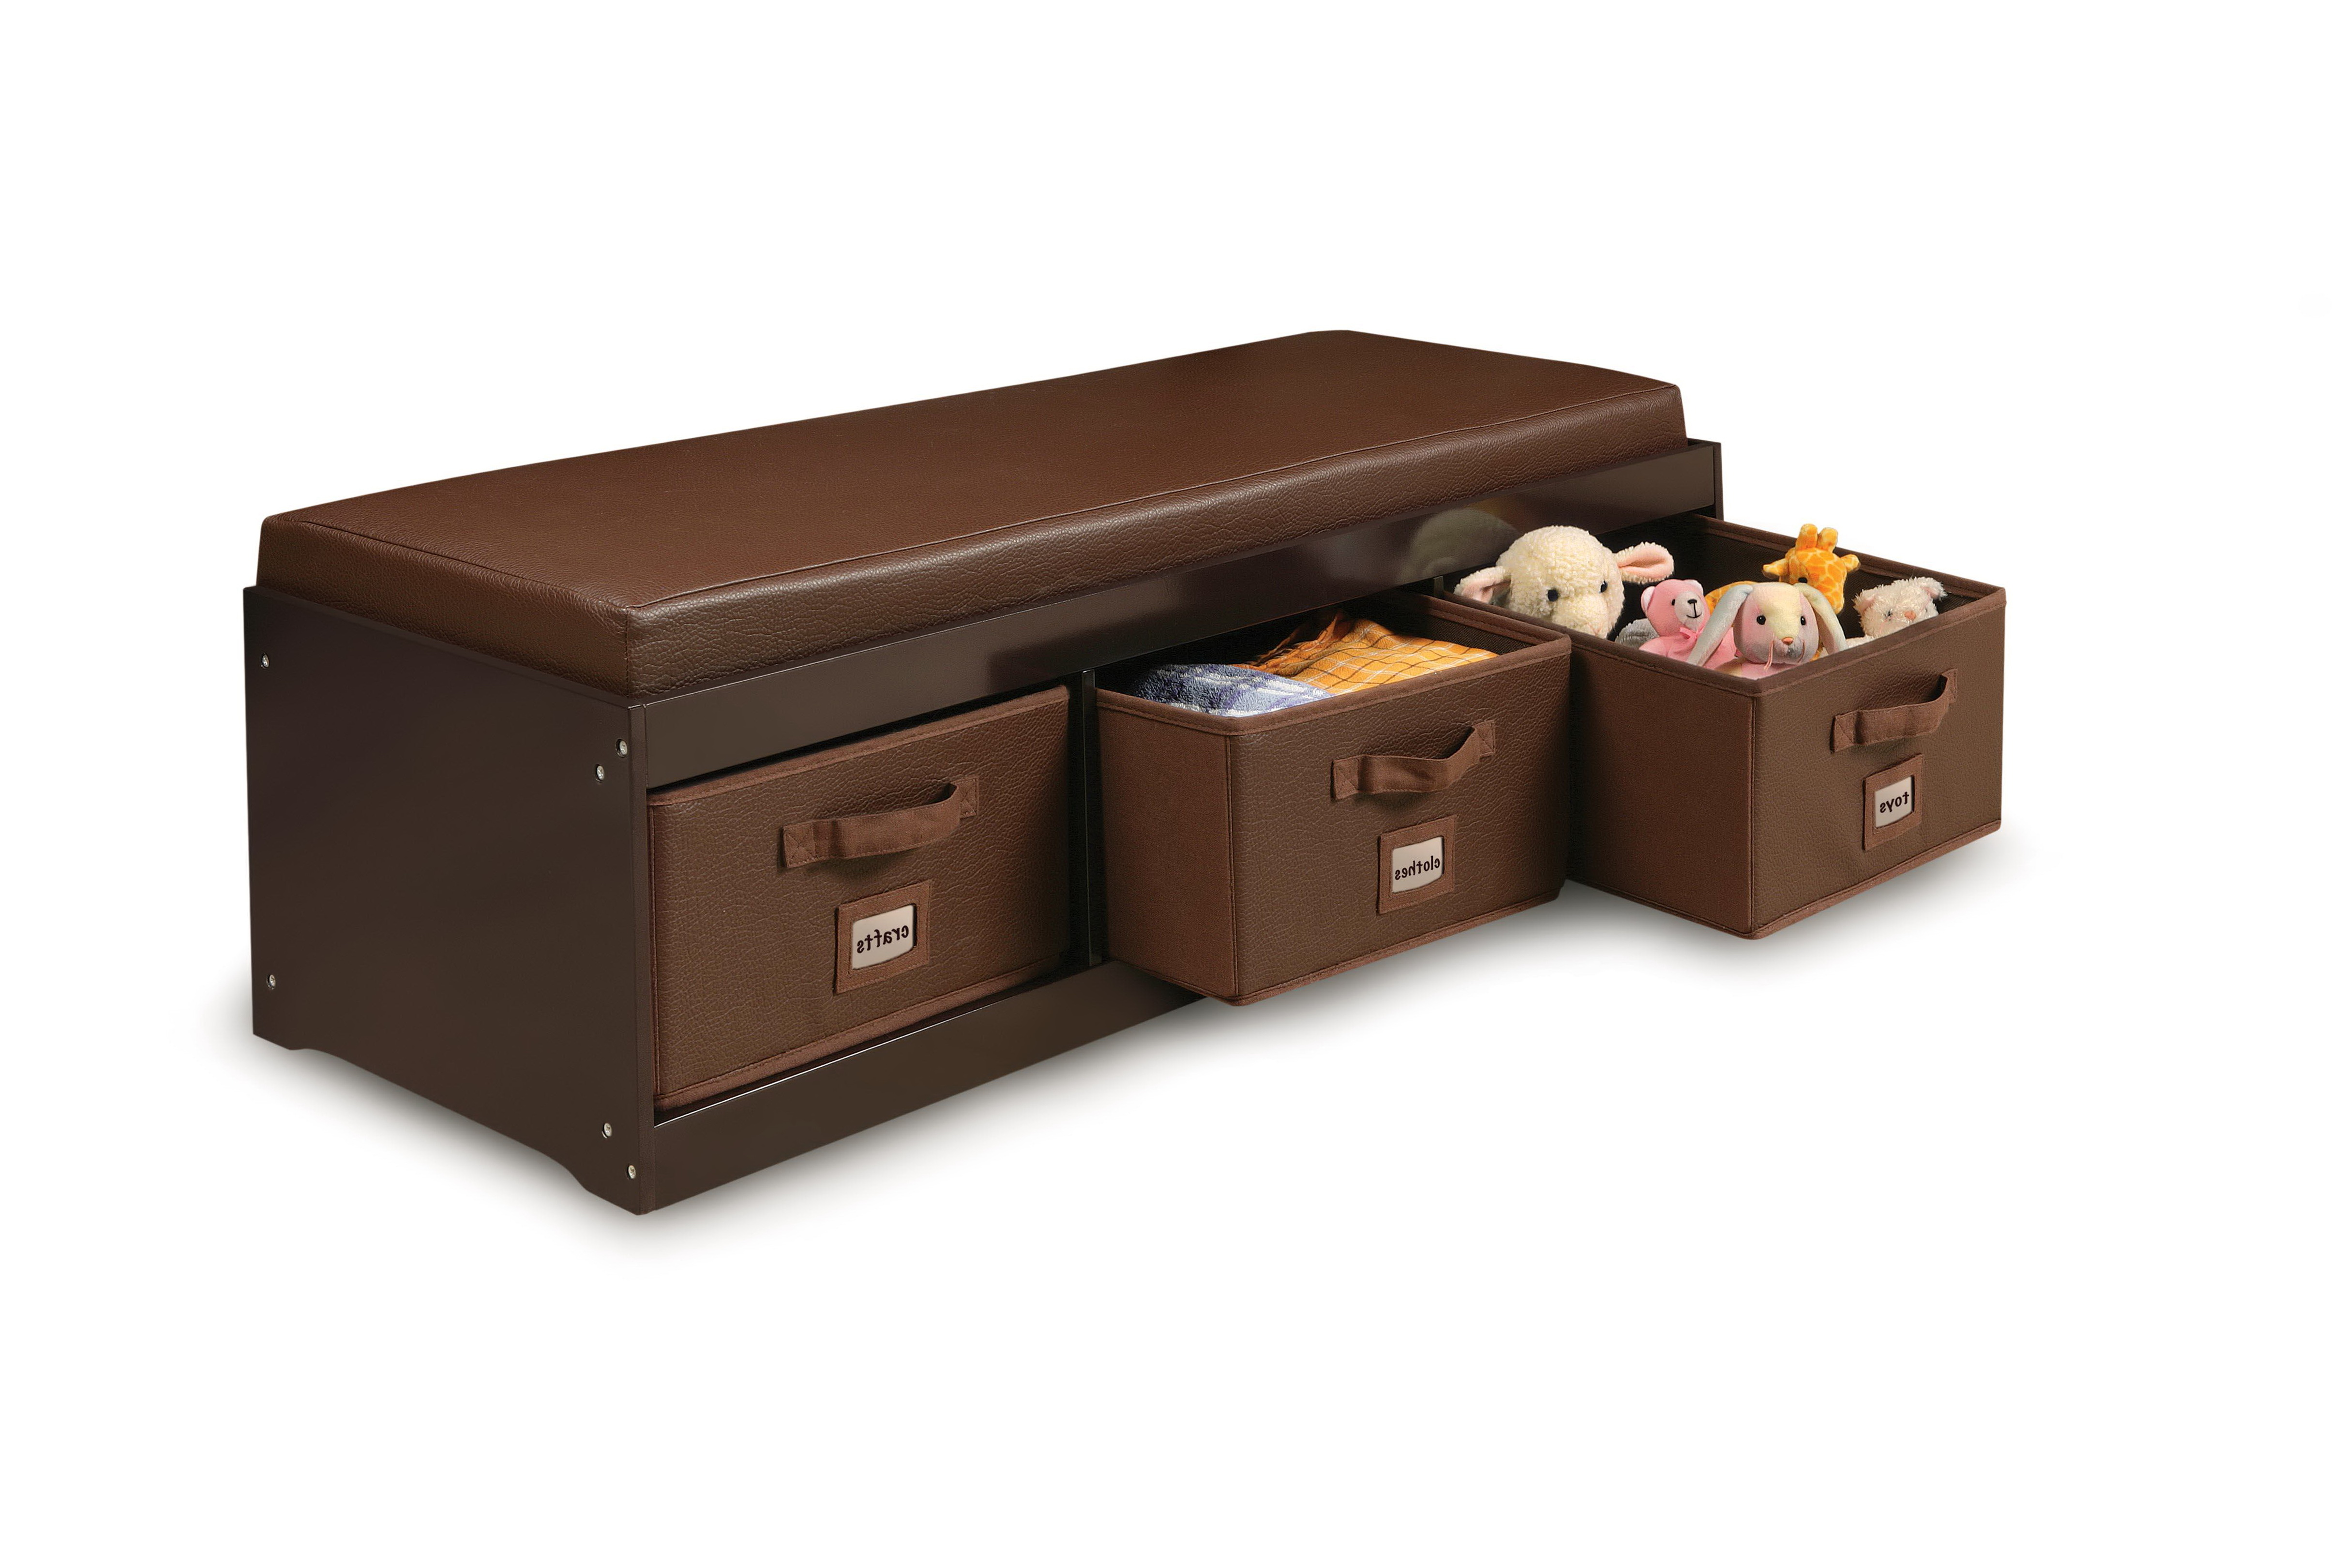 Bedroom Storage Bench With Cushion Home Design Ideas